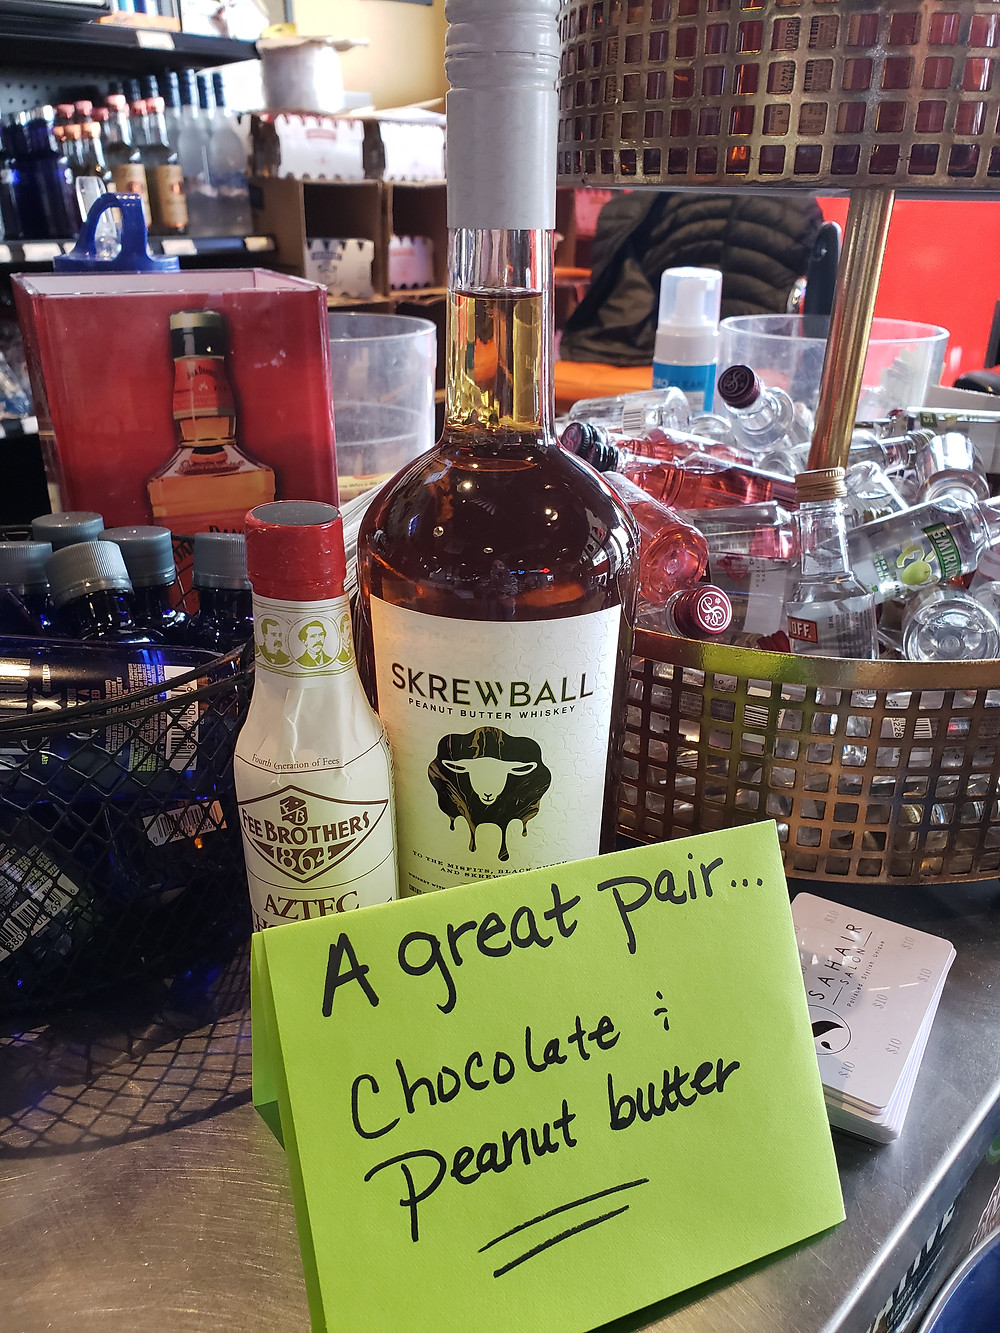 Skrewball Peanut Butter Whiskey and Chocolate Bitters